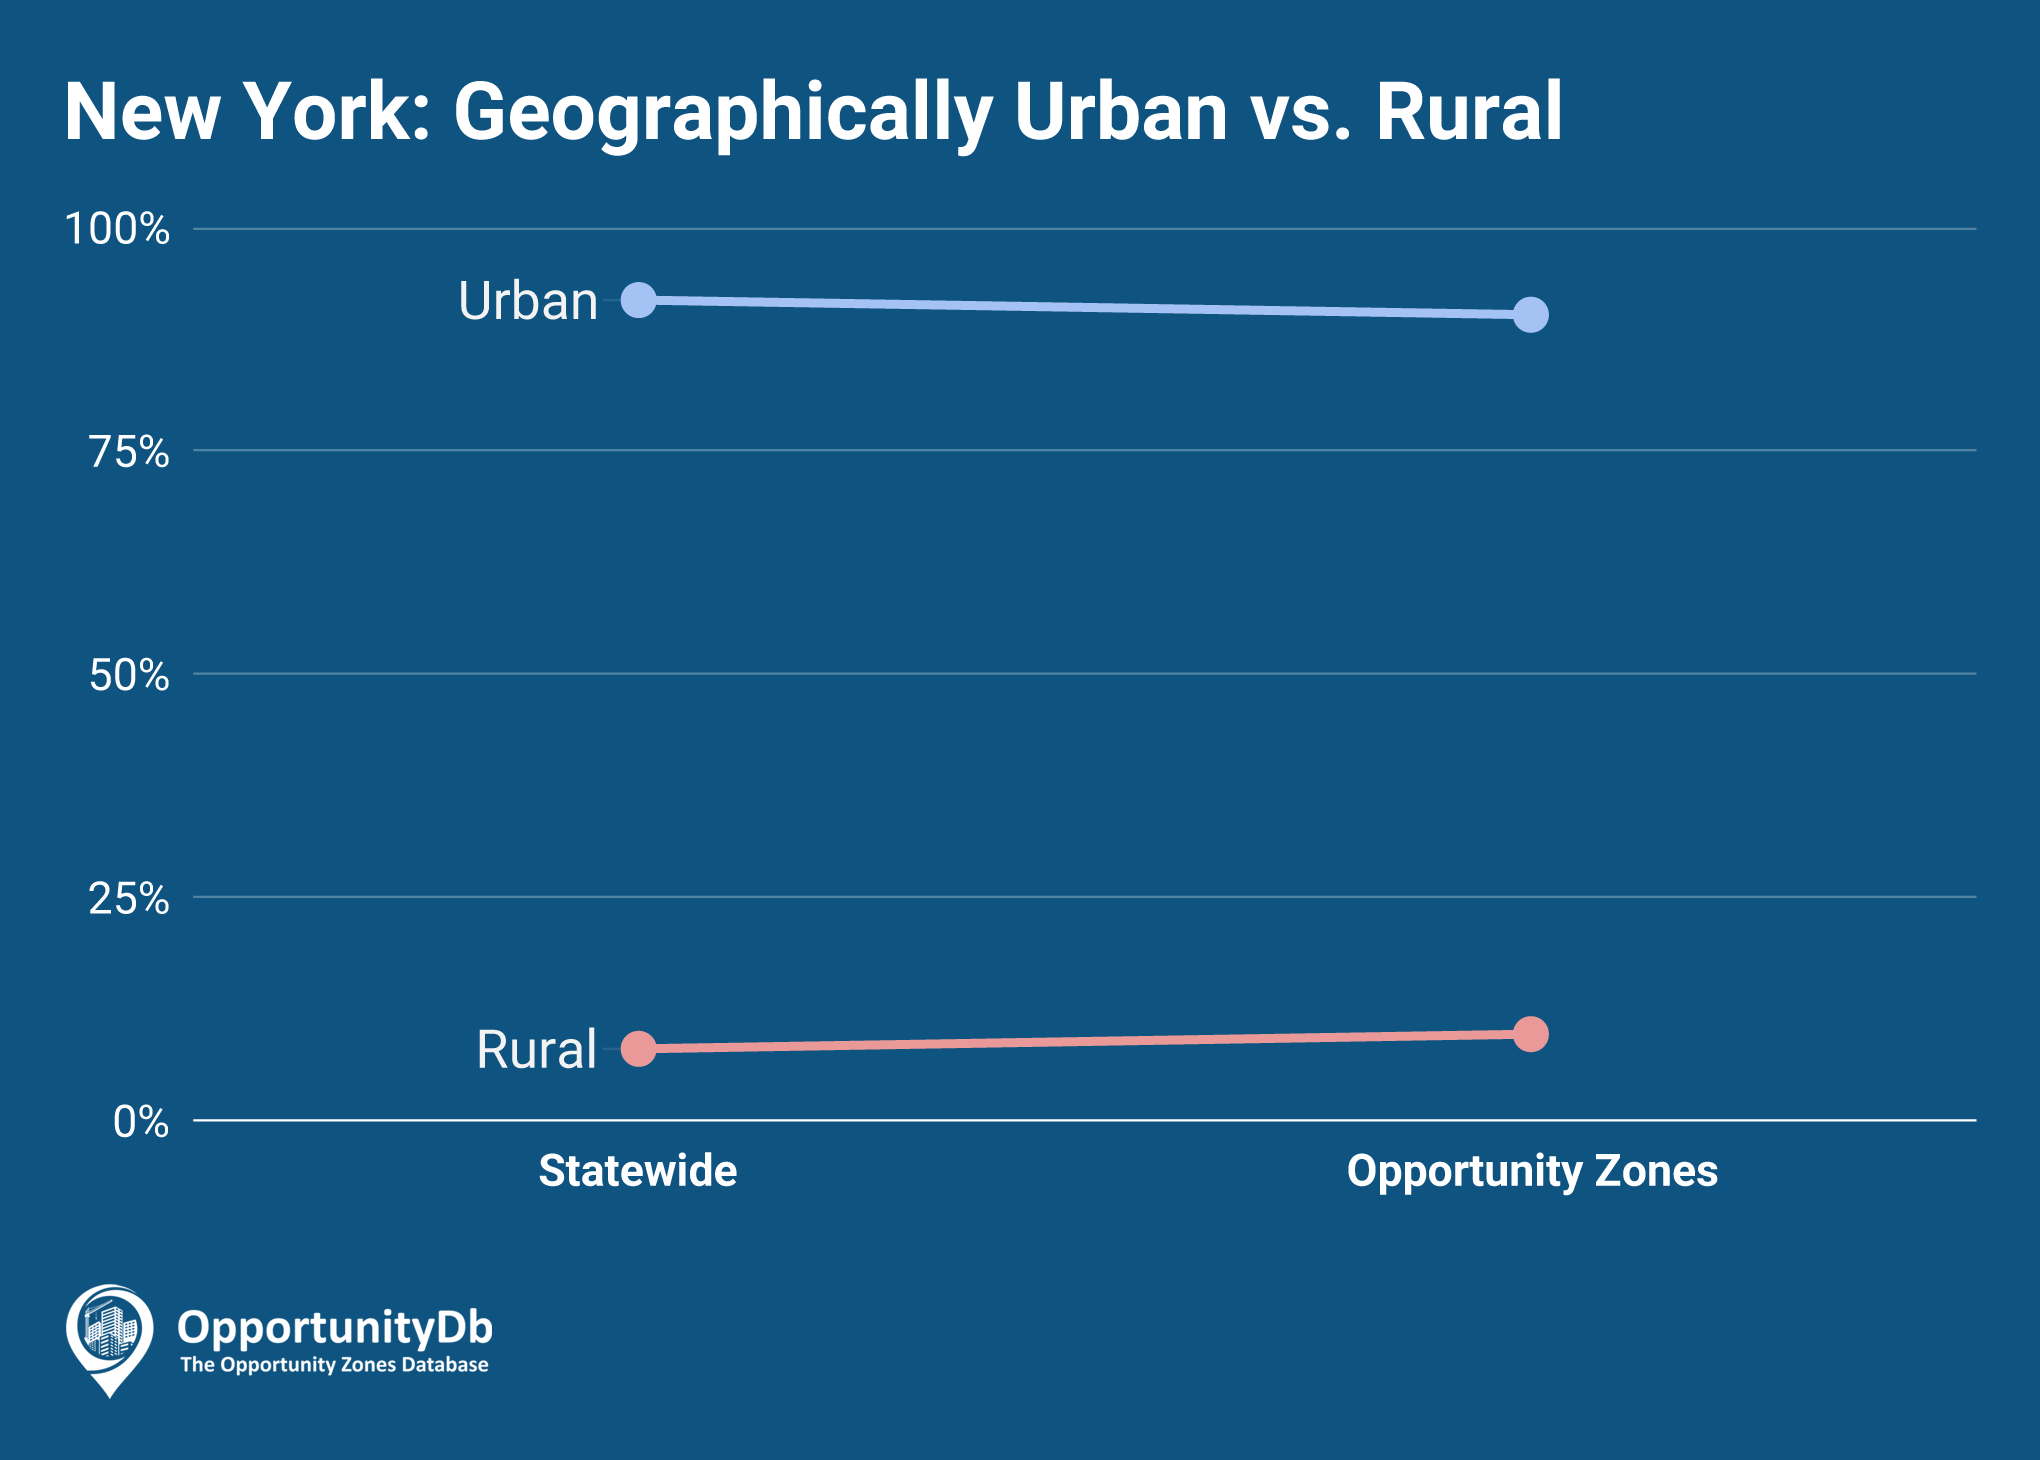 Urban vs. Rural in New York Opportunity Zones